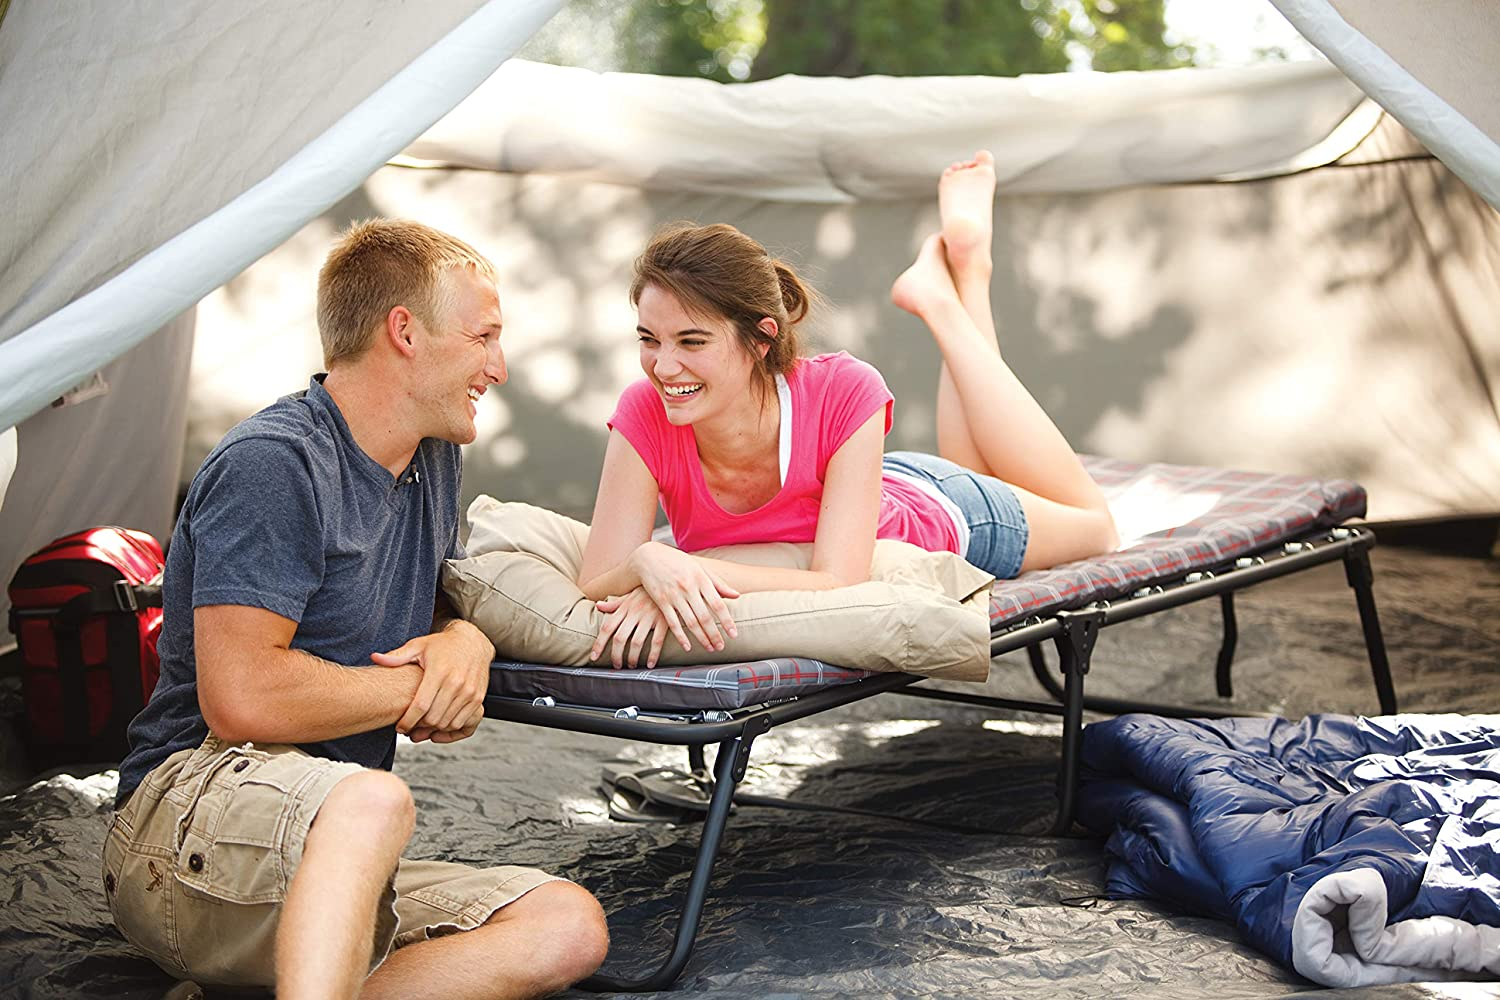 Check out Camping Bed   Top 10 Best Camping Beds of 2021 at https://survivallife.com/camping-bed/